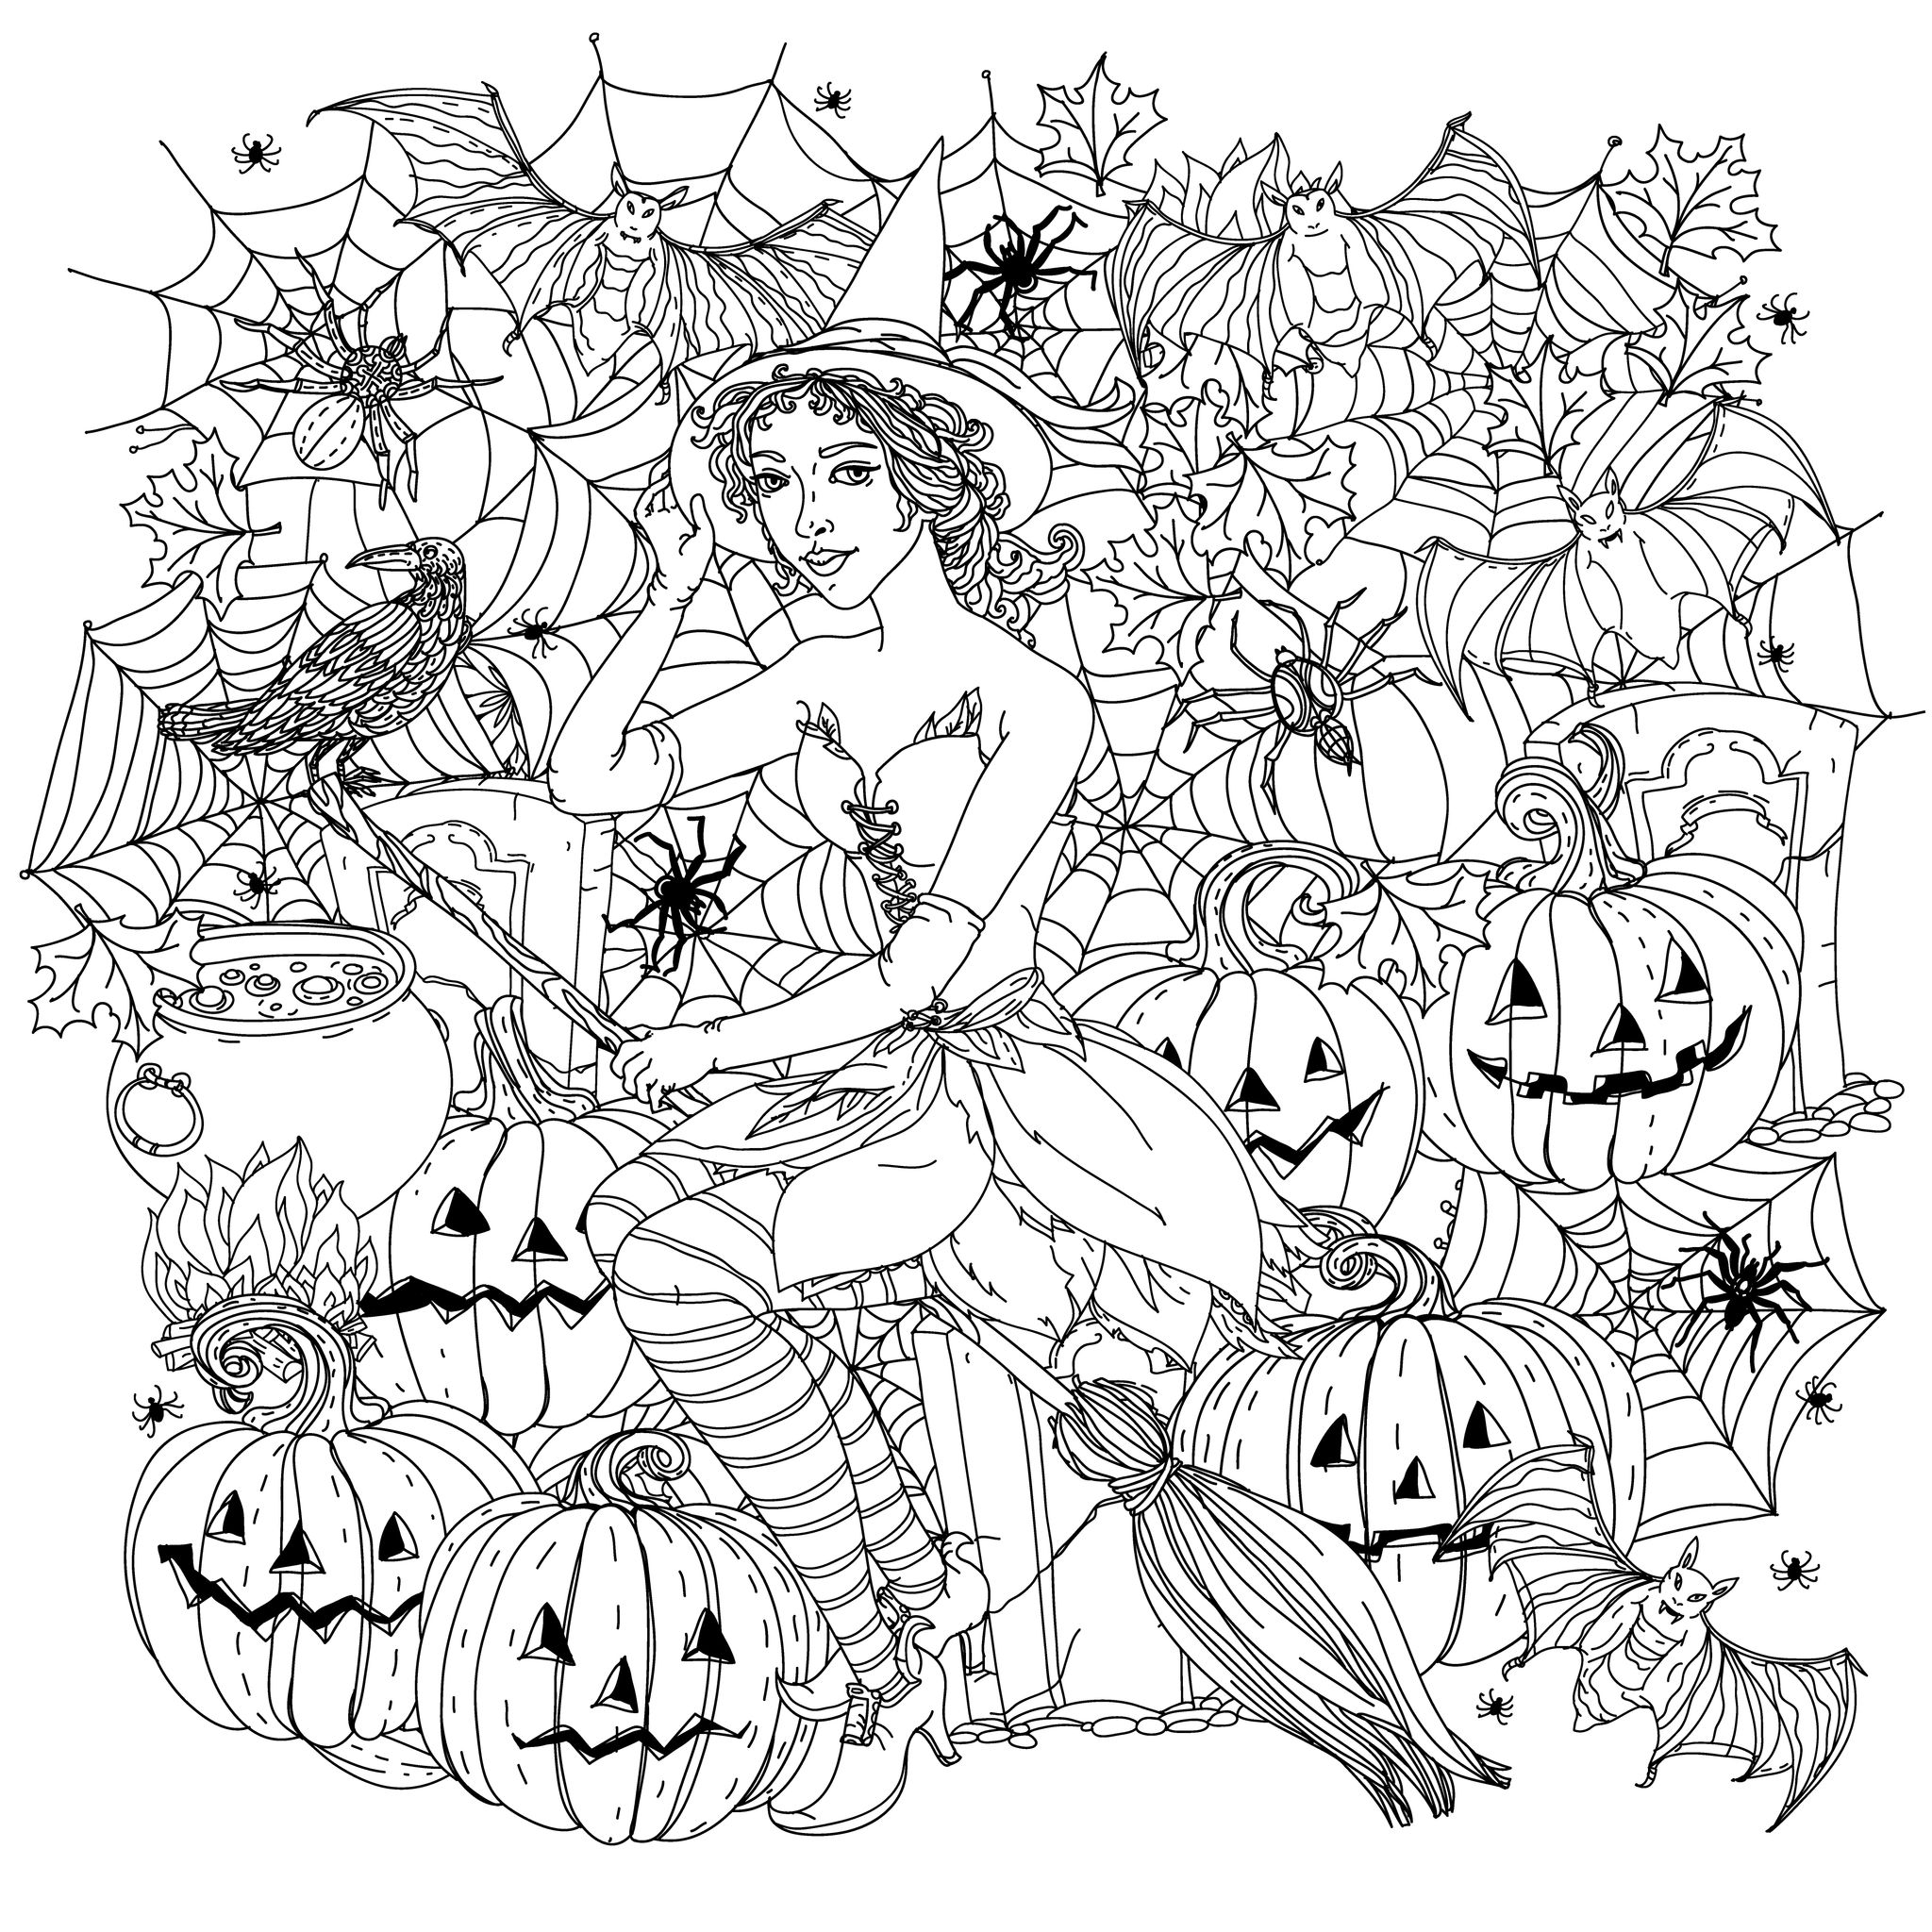 Halloween witch with pumpkins by mashabr | Halloween - Coloring ...